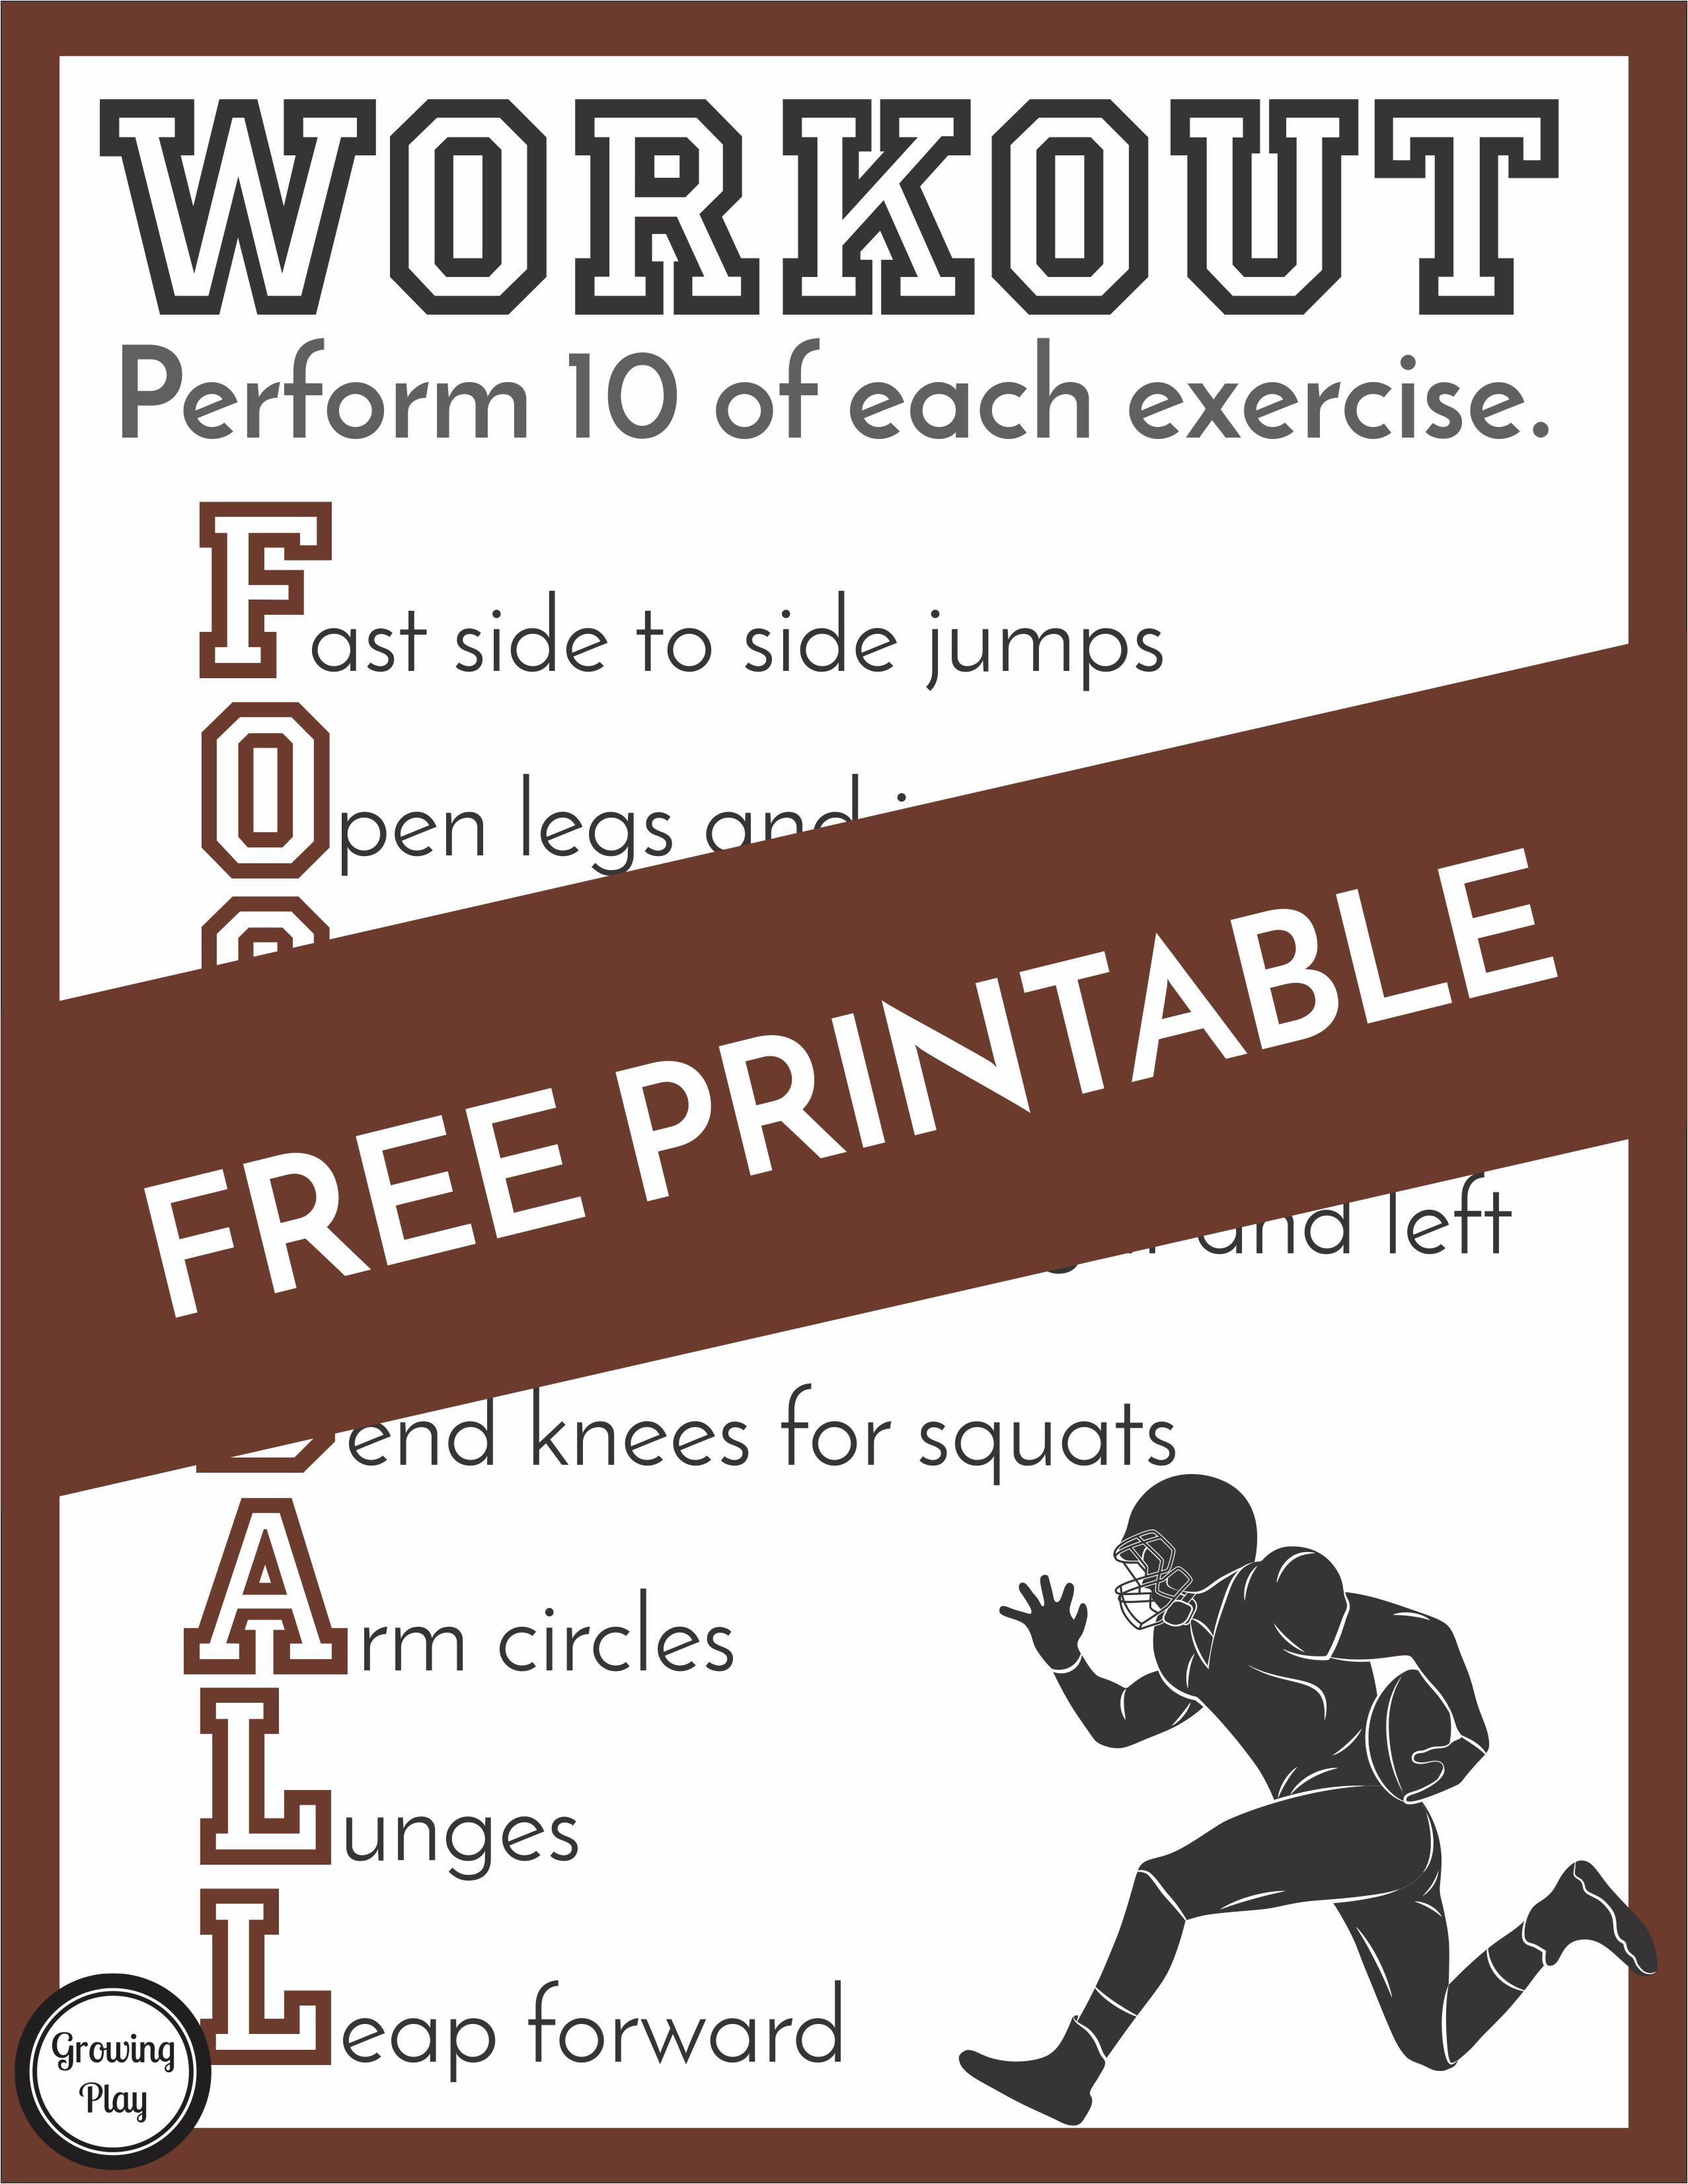 Football Workout Printable (With images) Football